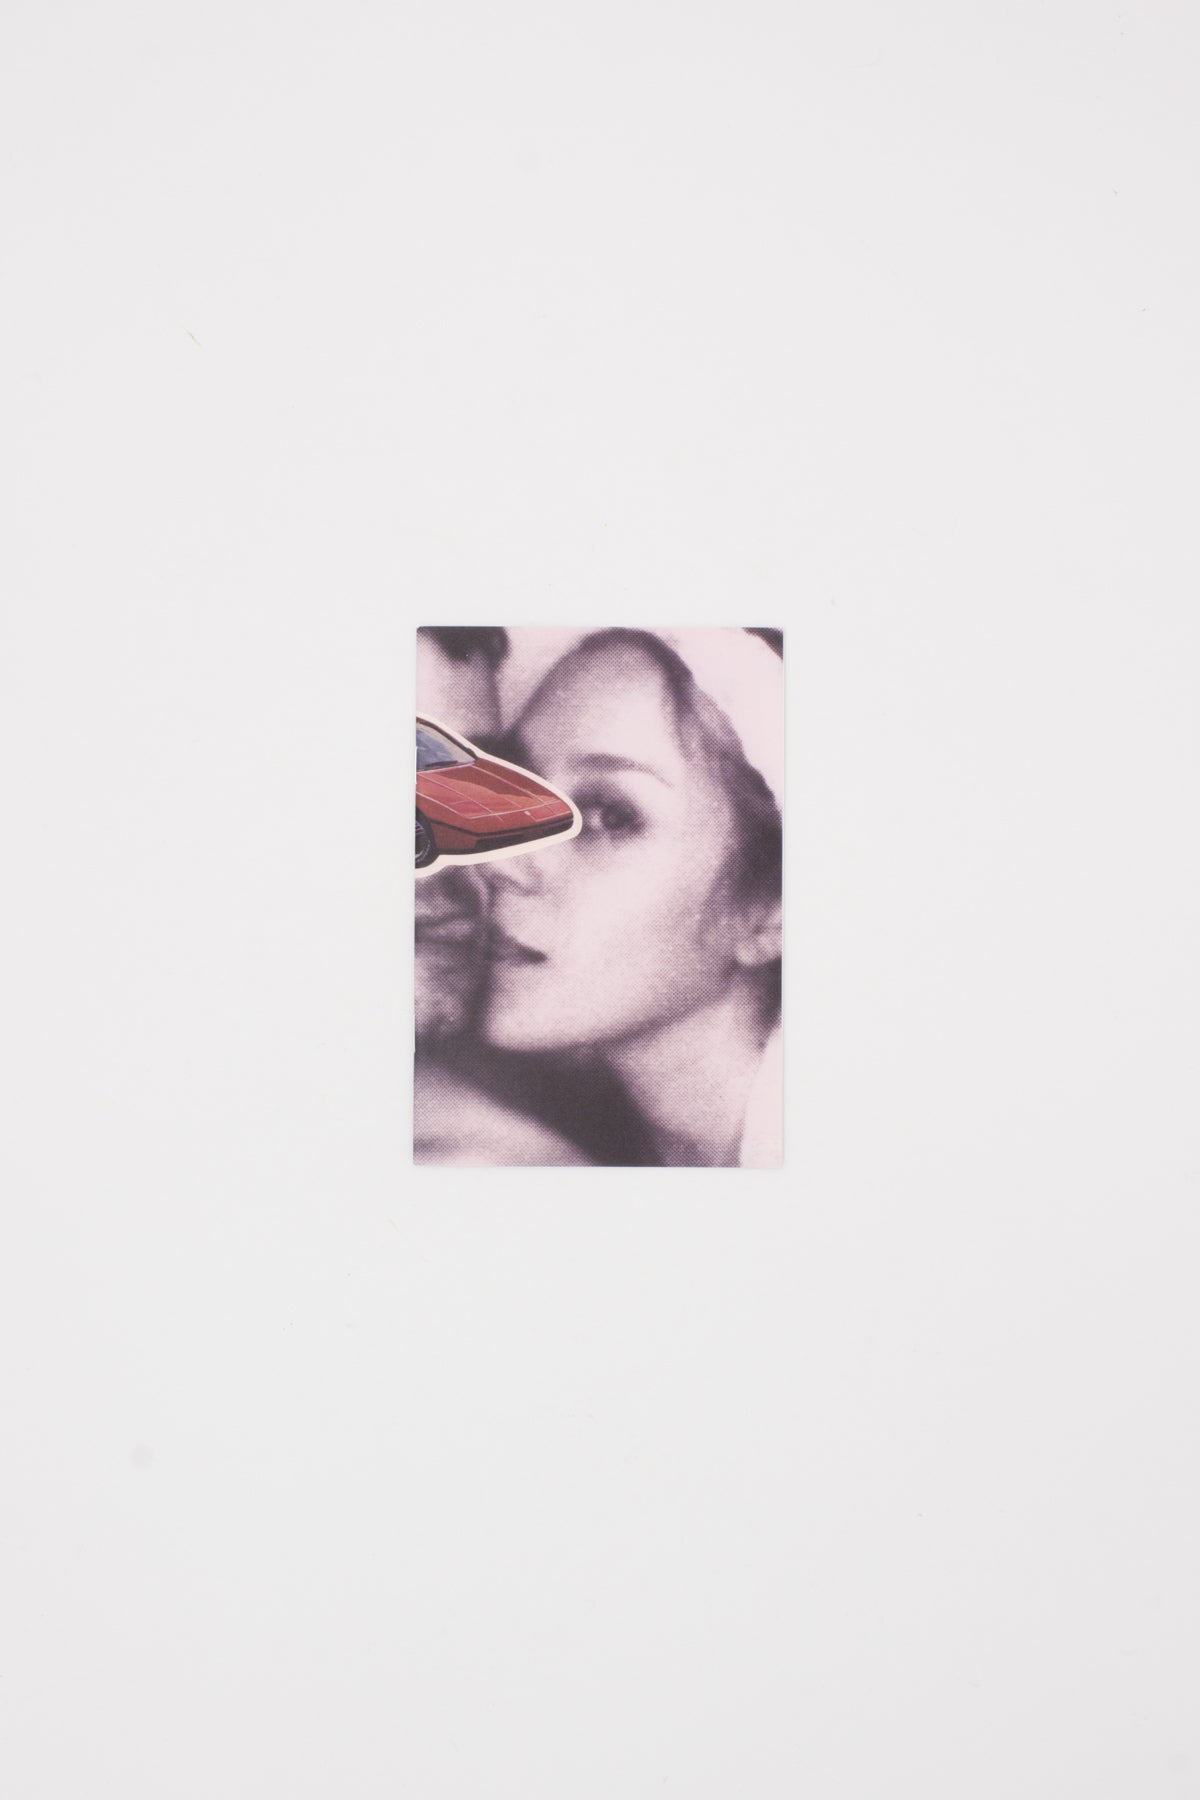 No Time for Love - Chloë Sevigny